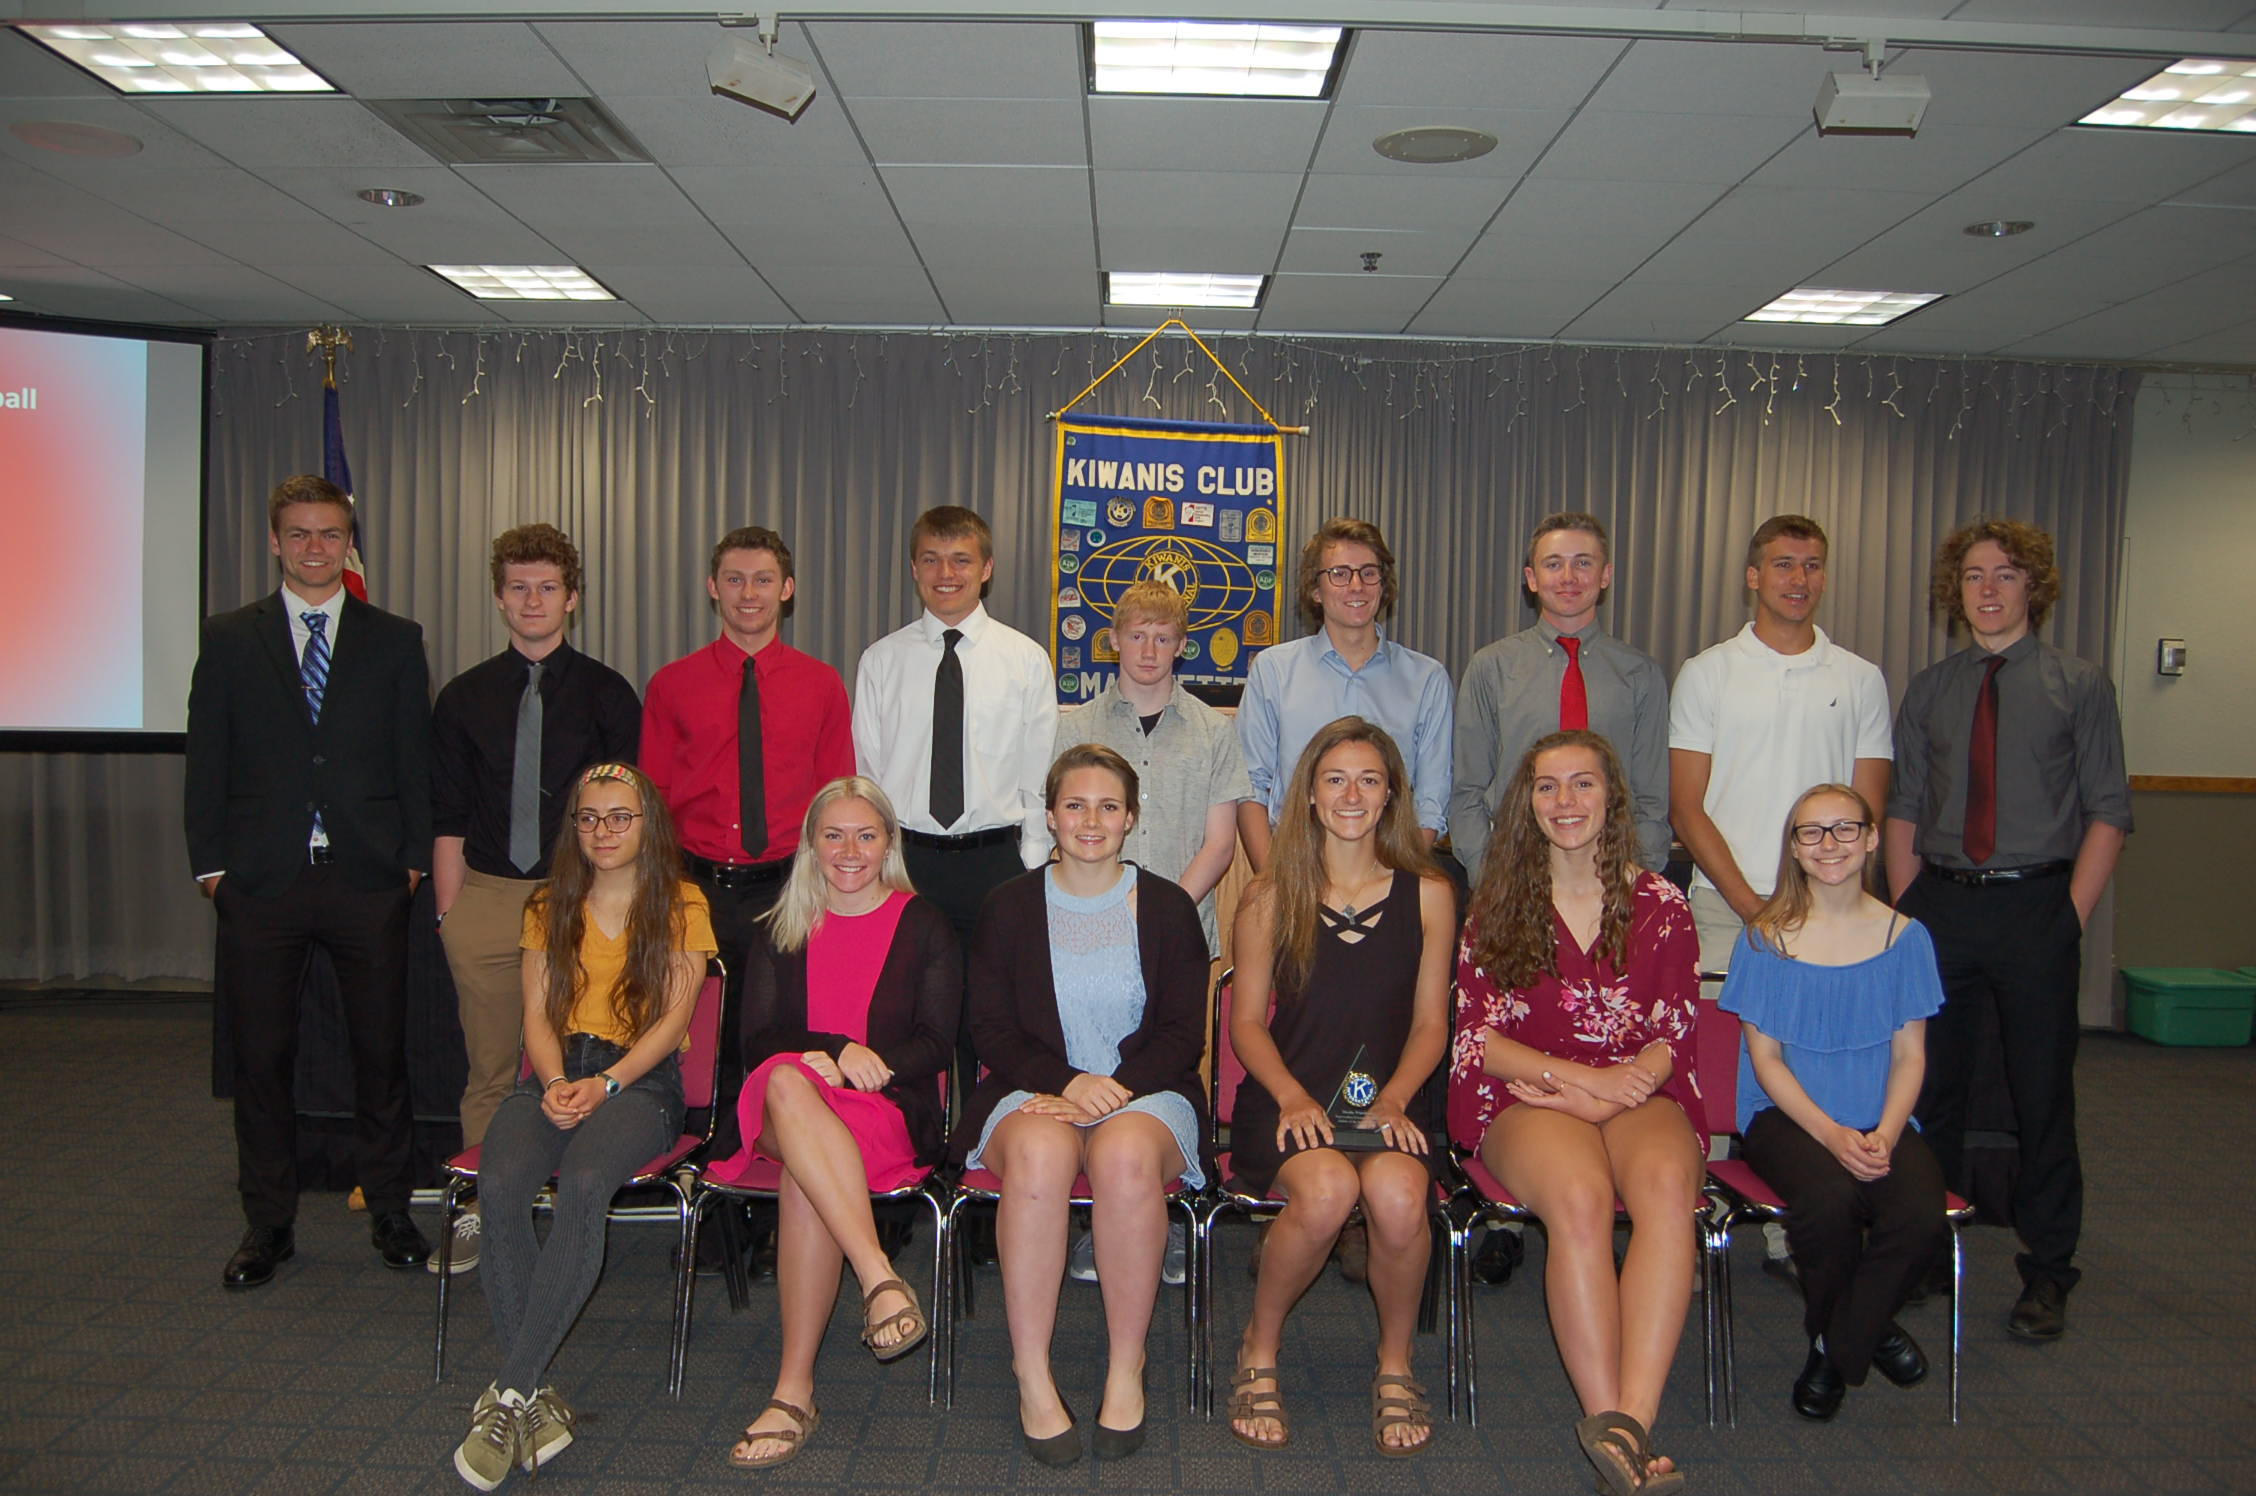 Warchock and Thomas Selected as Kiwanis Athletes of the Year